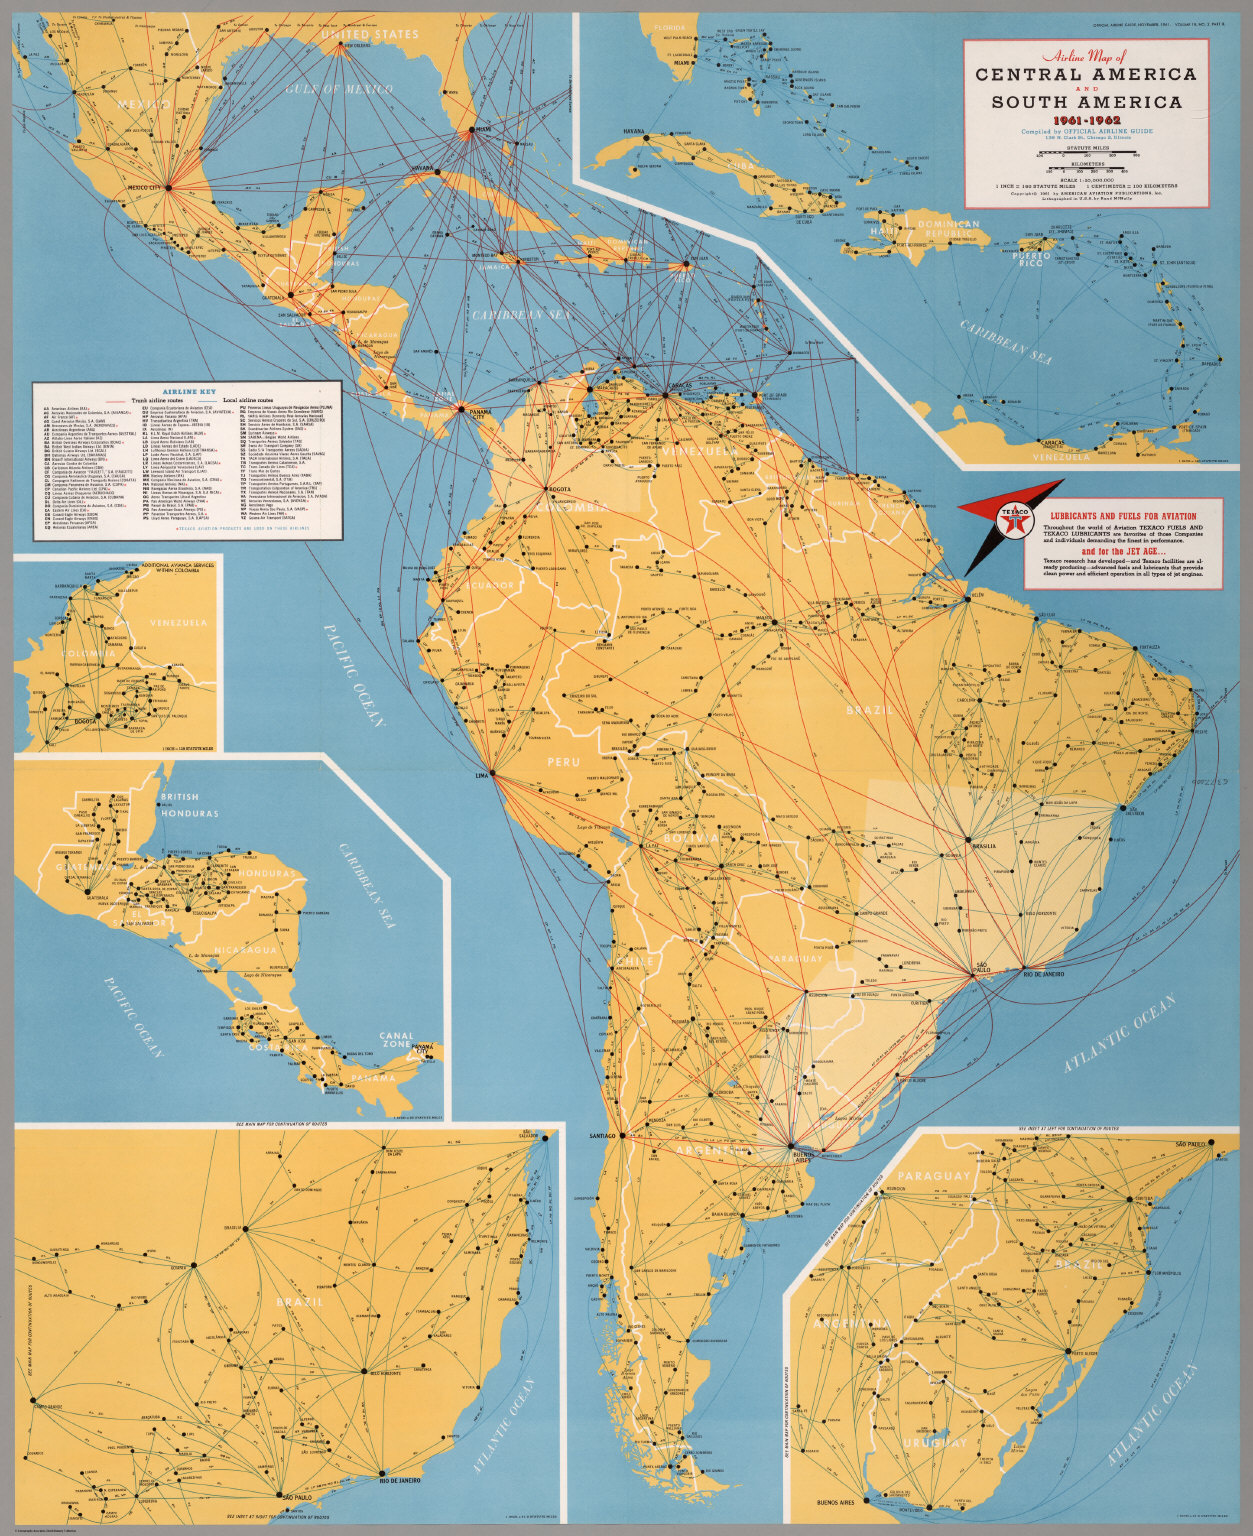 Airline Map of Central America and South America 1961-1962 ... on mexico map, croatia map, panama map, morocco map, haiti map, middle east map, costa rica map, australia map, asia map, western hemisphere map, india map, belize map, italy map, uruguay map, spain map, zimbabwe map, ecuador map, europe map, argentina map, africa map,